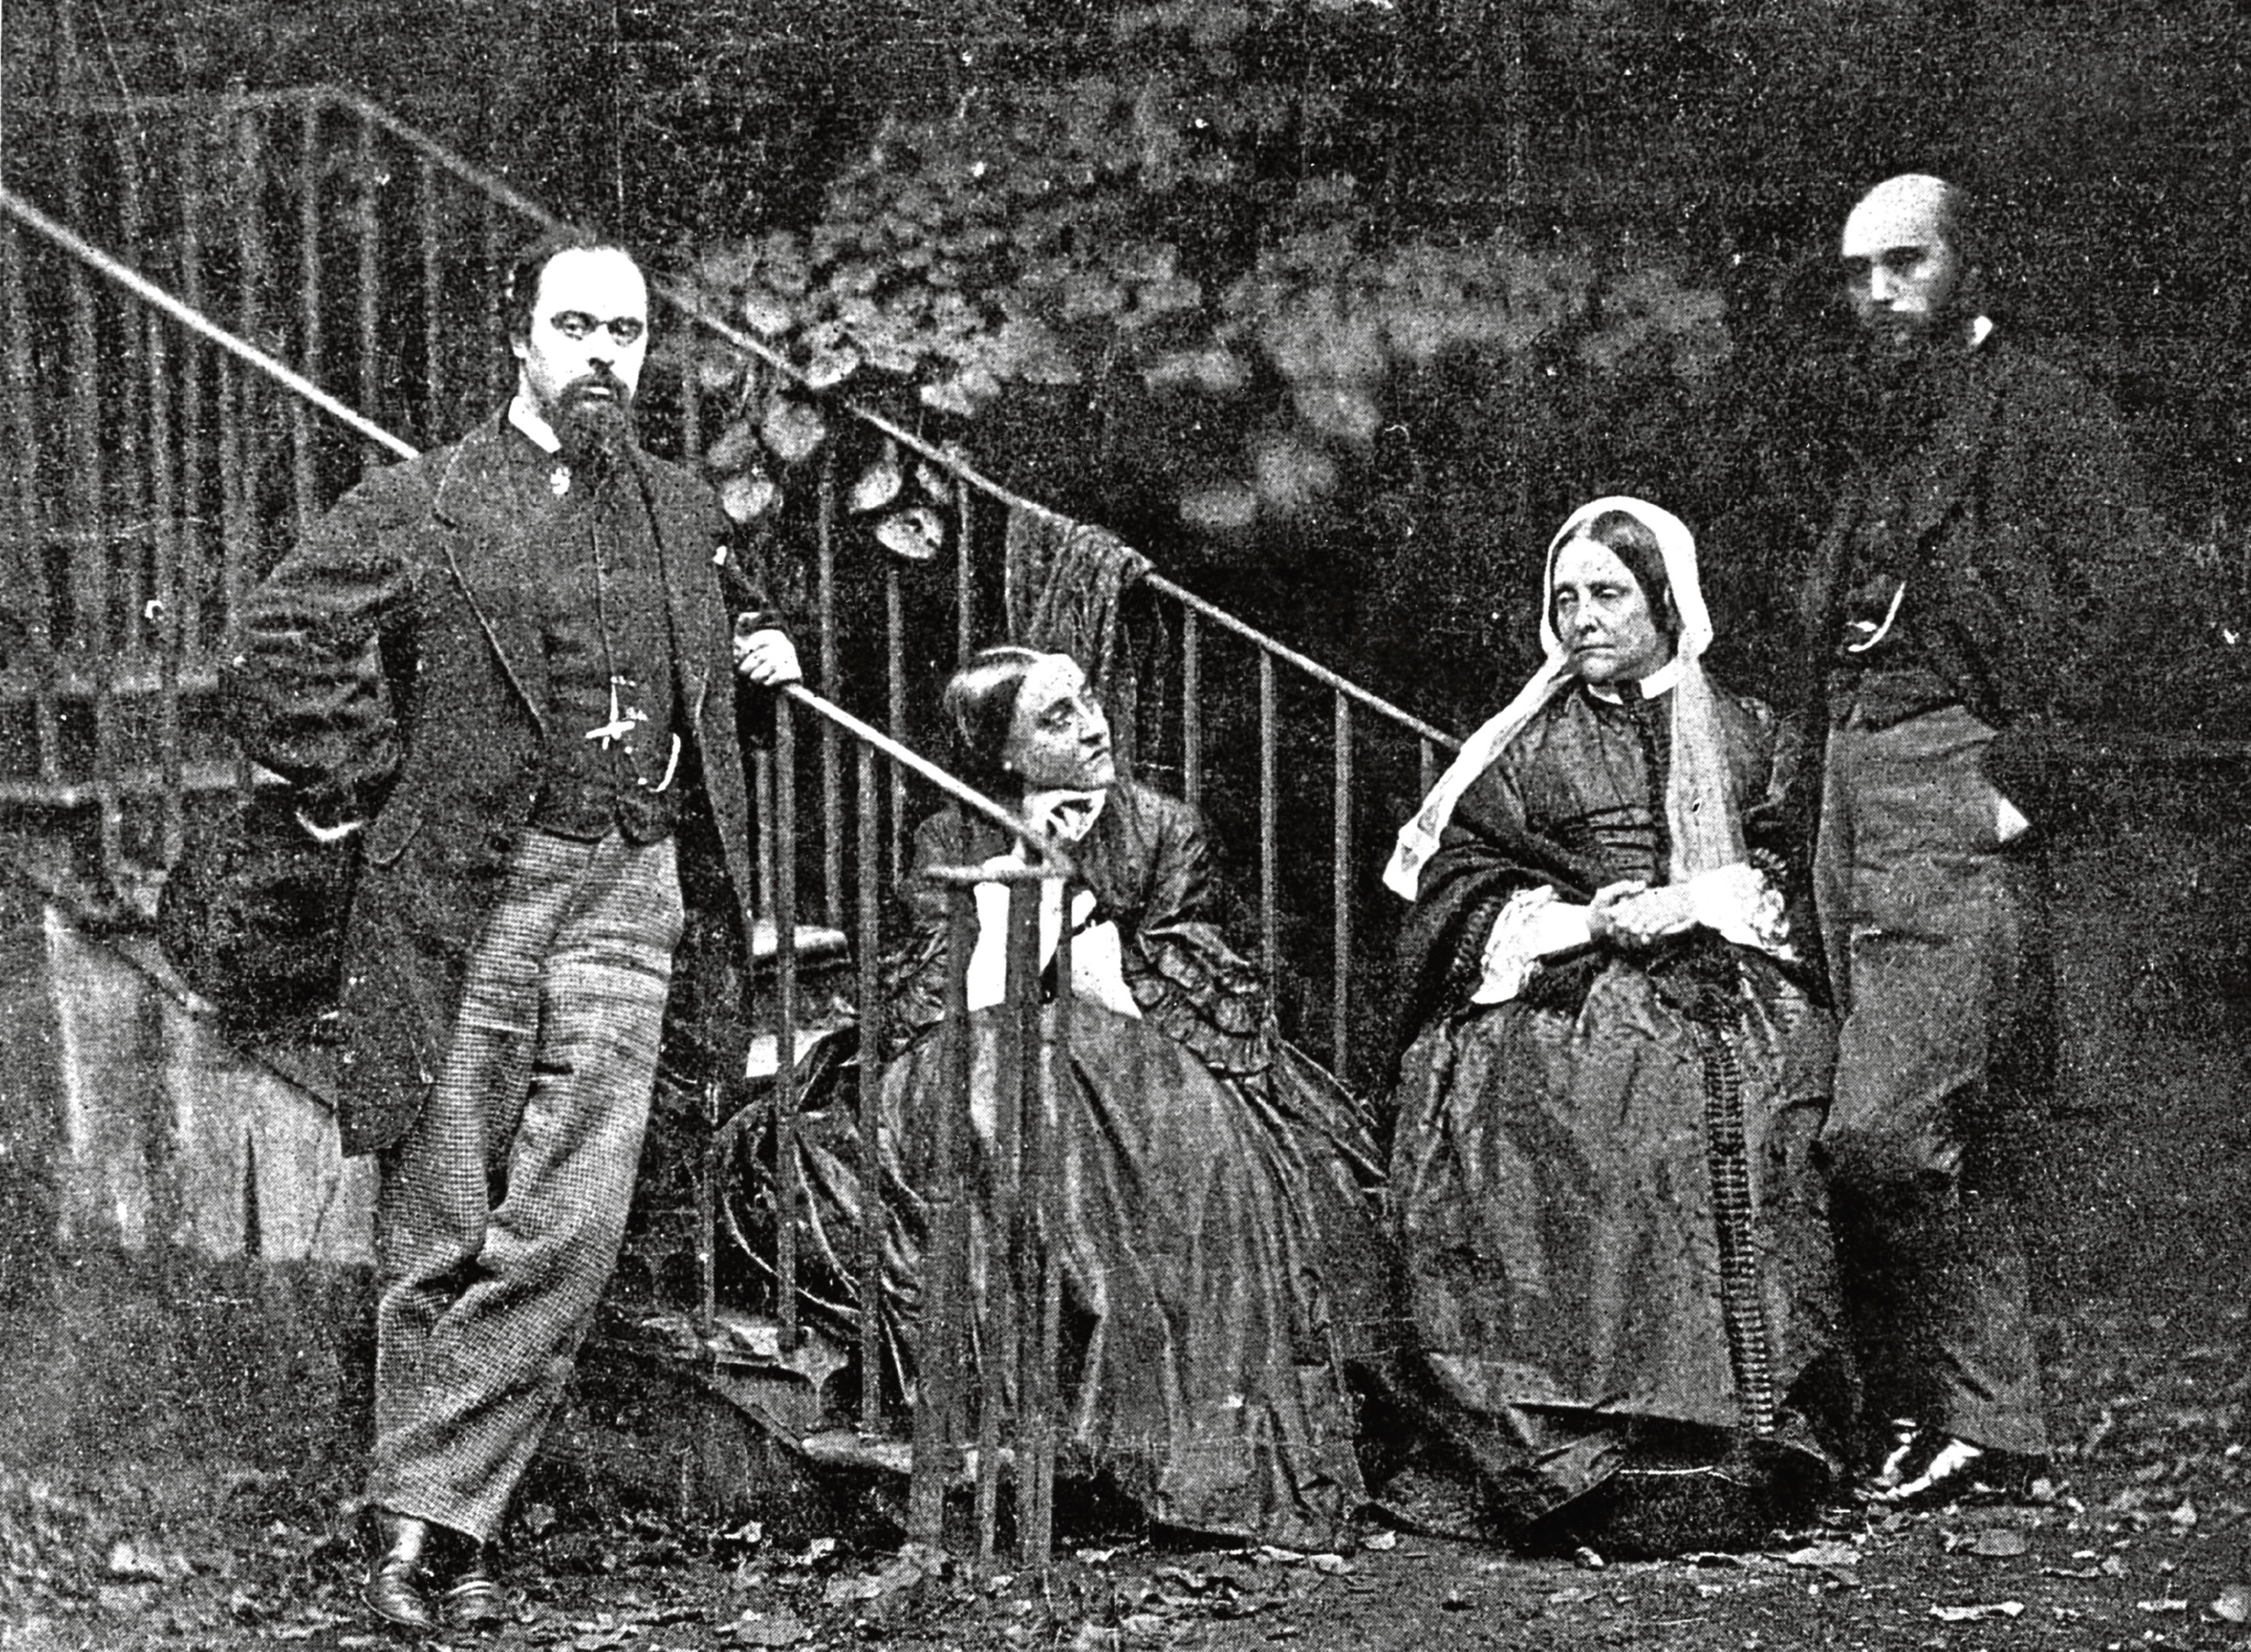 Poet and painter Dante Gabriel Rossetti, poet Christina Rossetti and art critic William Michael Rossetti with their mother in the garden of Rossetti's house in Chelsea, London. (Photo by Lewis Carroll/Getty Images)